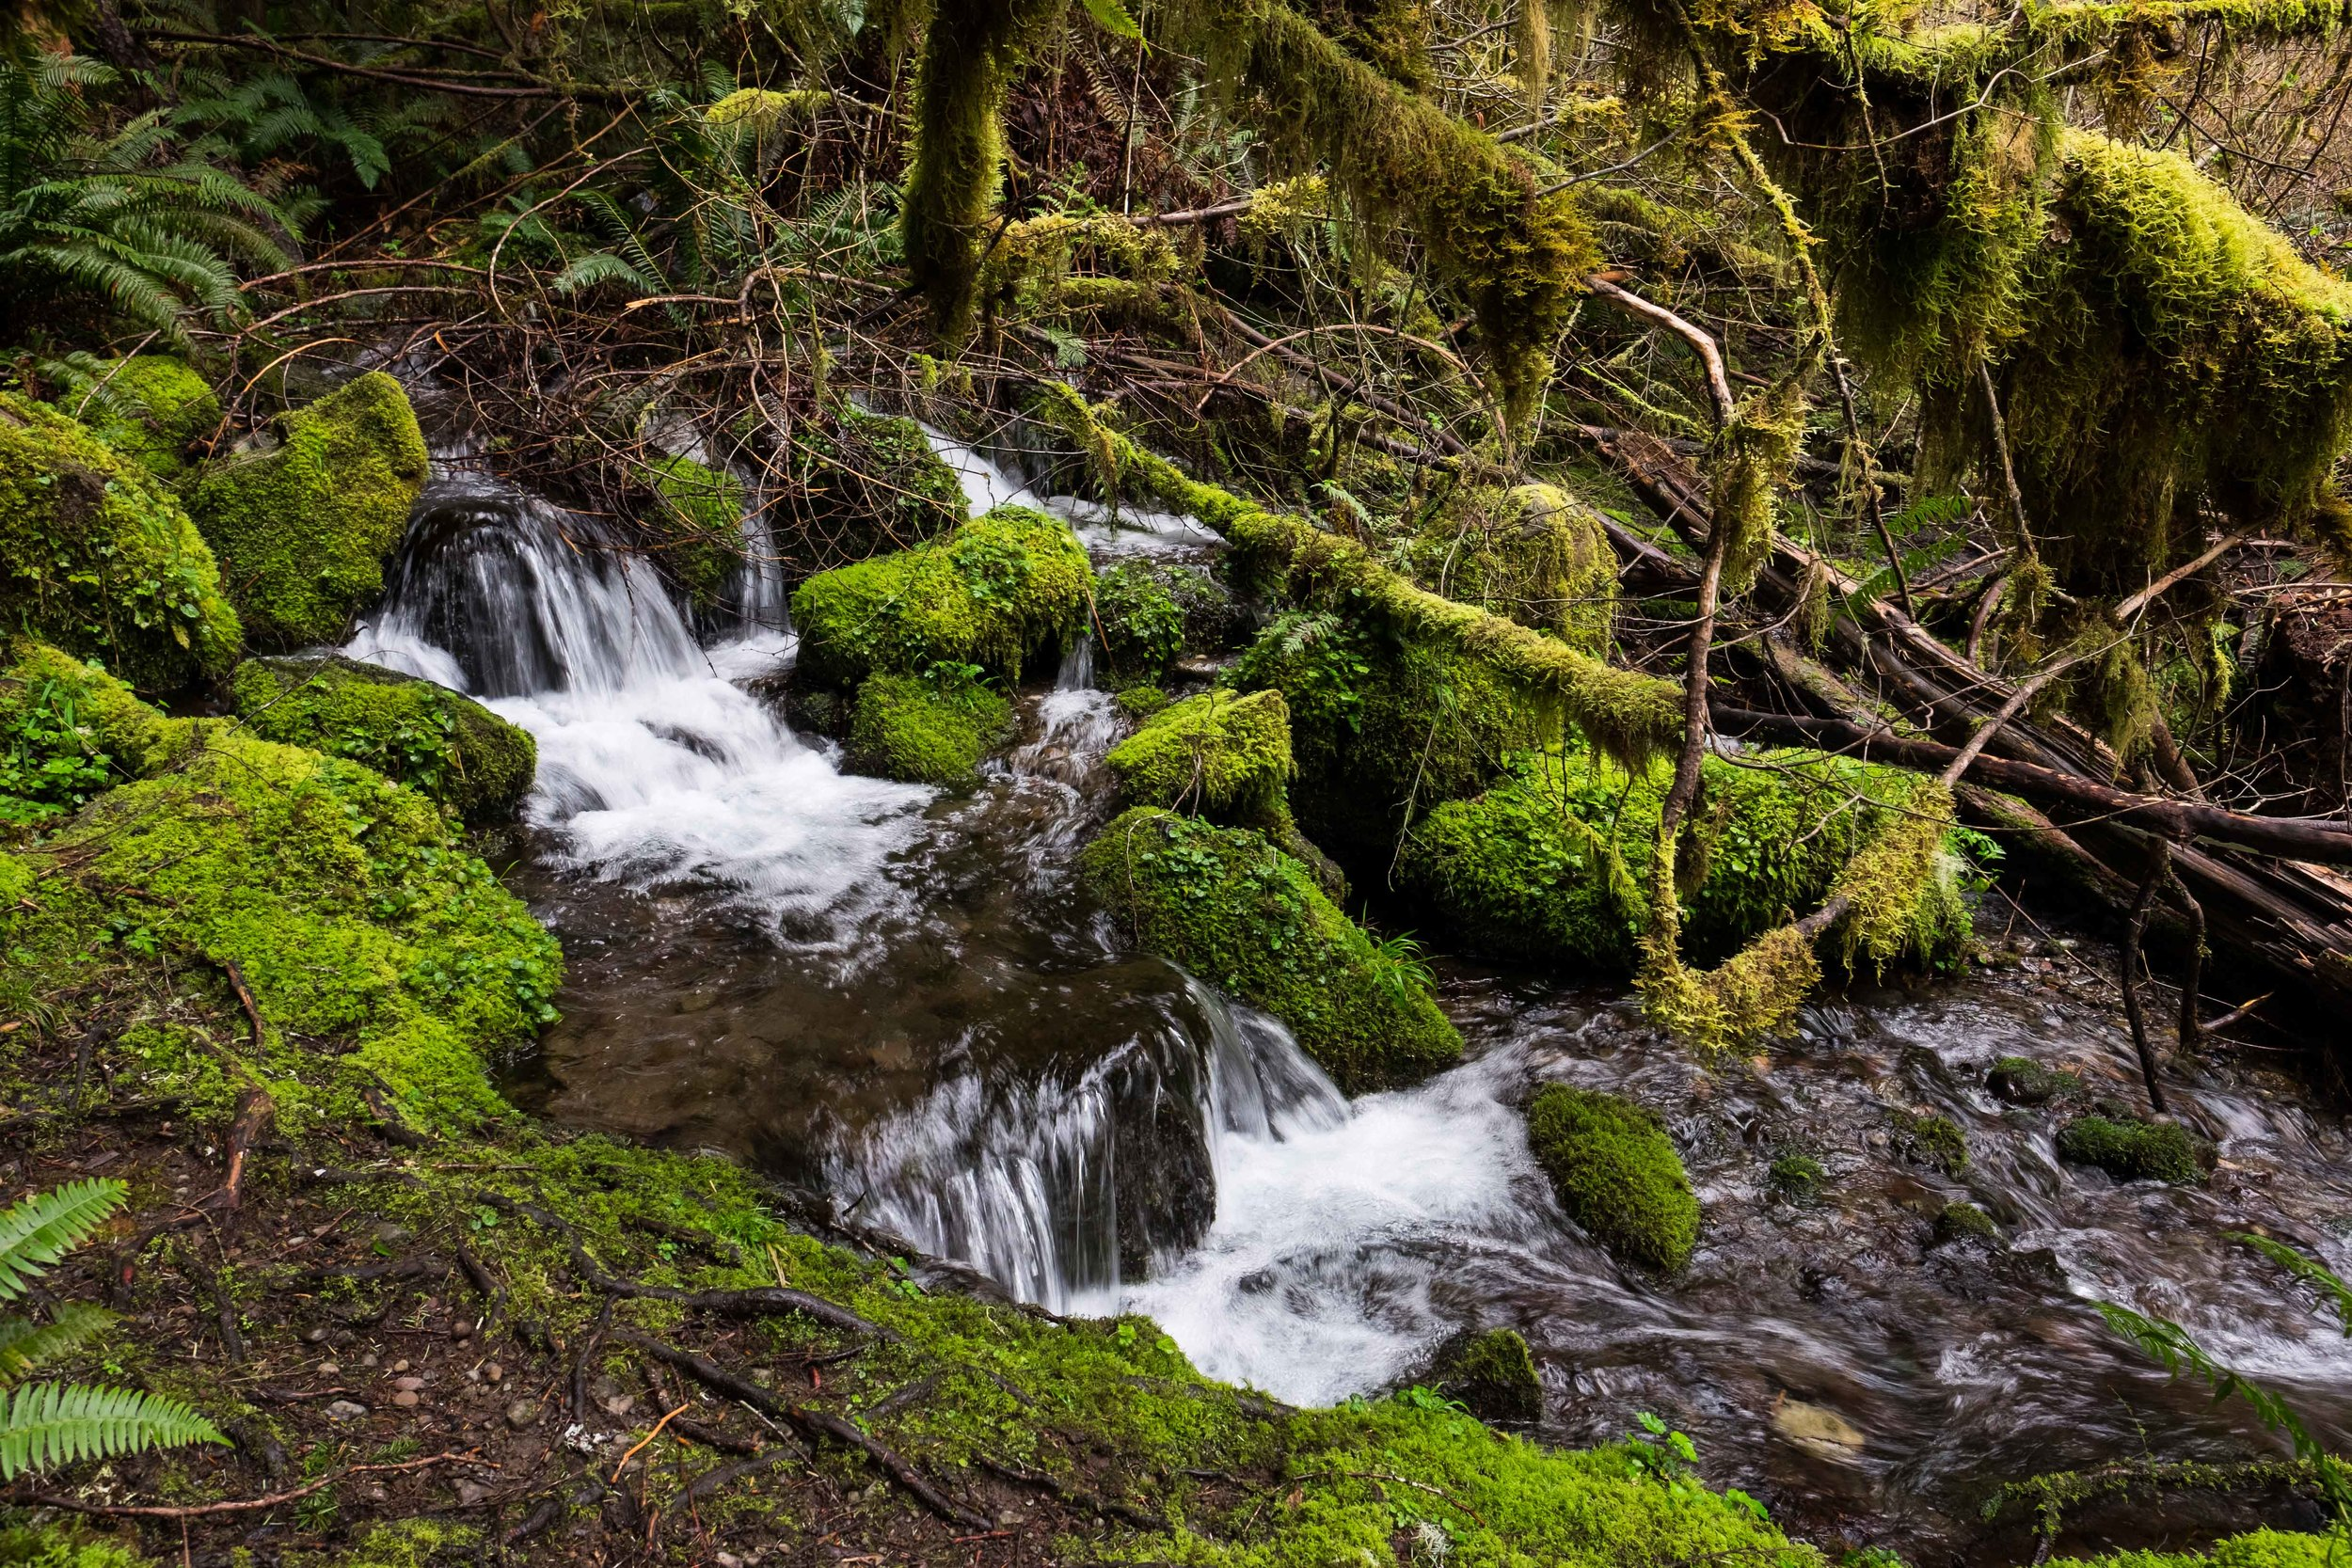 A small stream feeds into the Big Quilcene River.